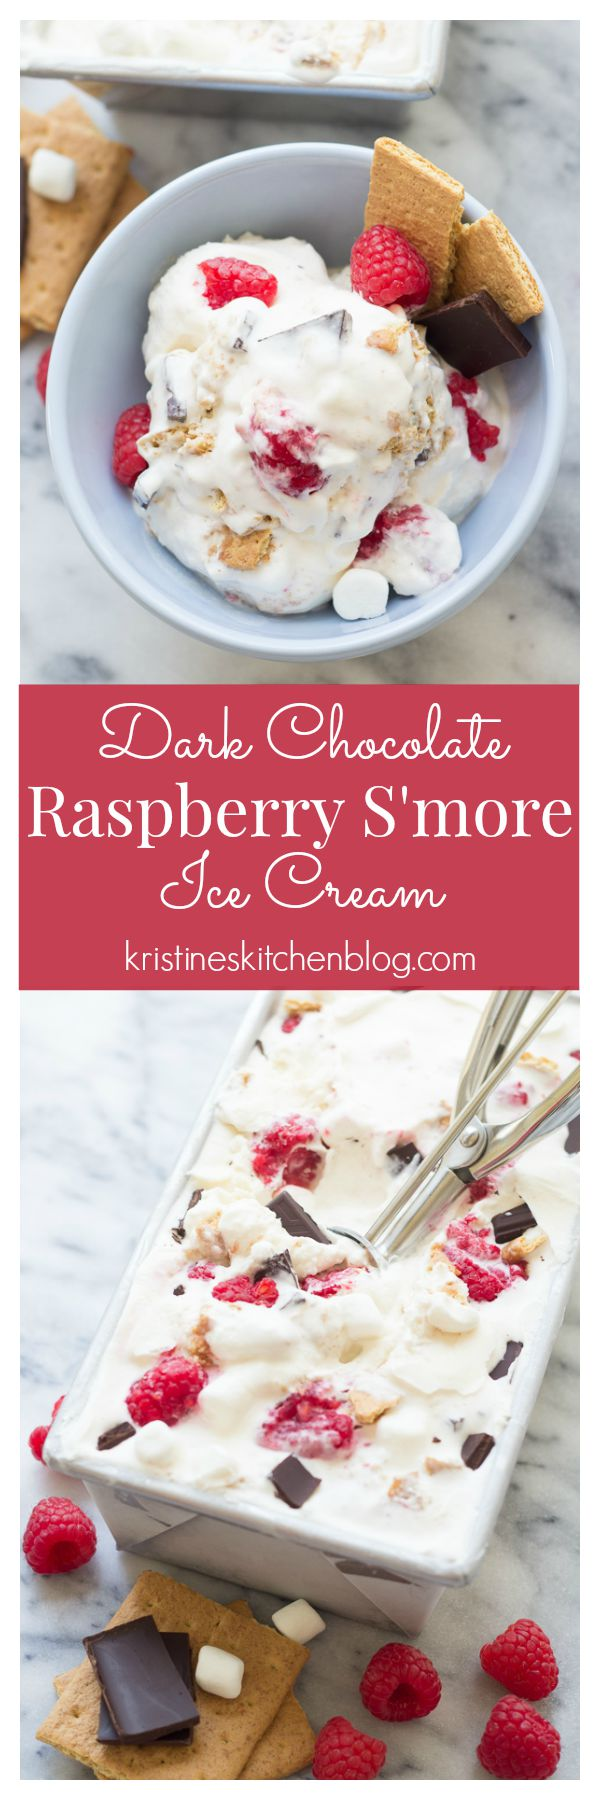 Creamy Dark Chocolate Raspberry S'more Ice Cream. You'll want a big bowl of this sweet ice cream!